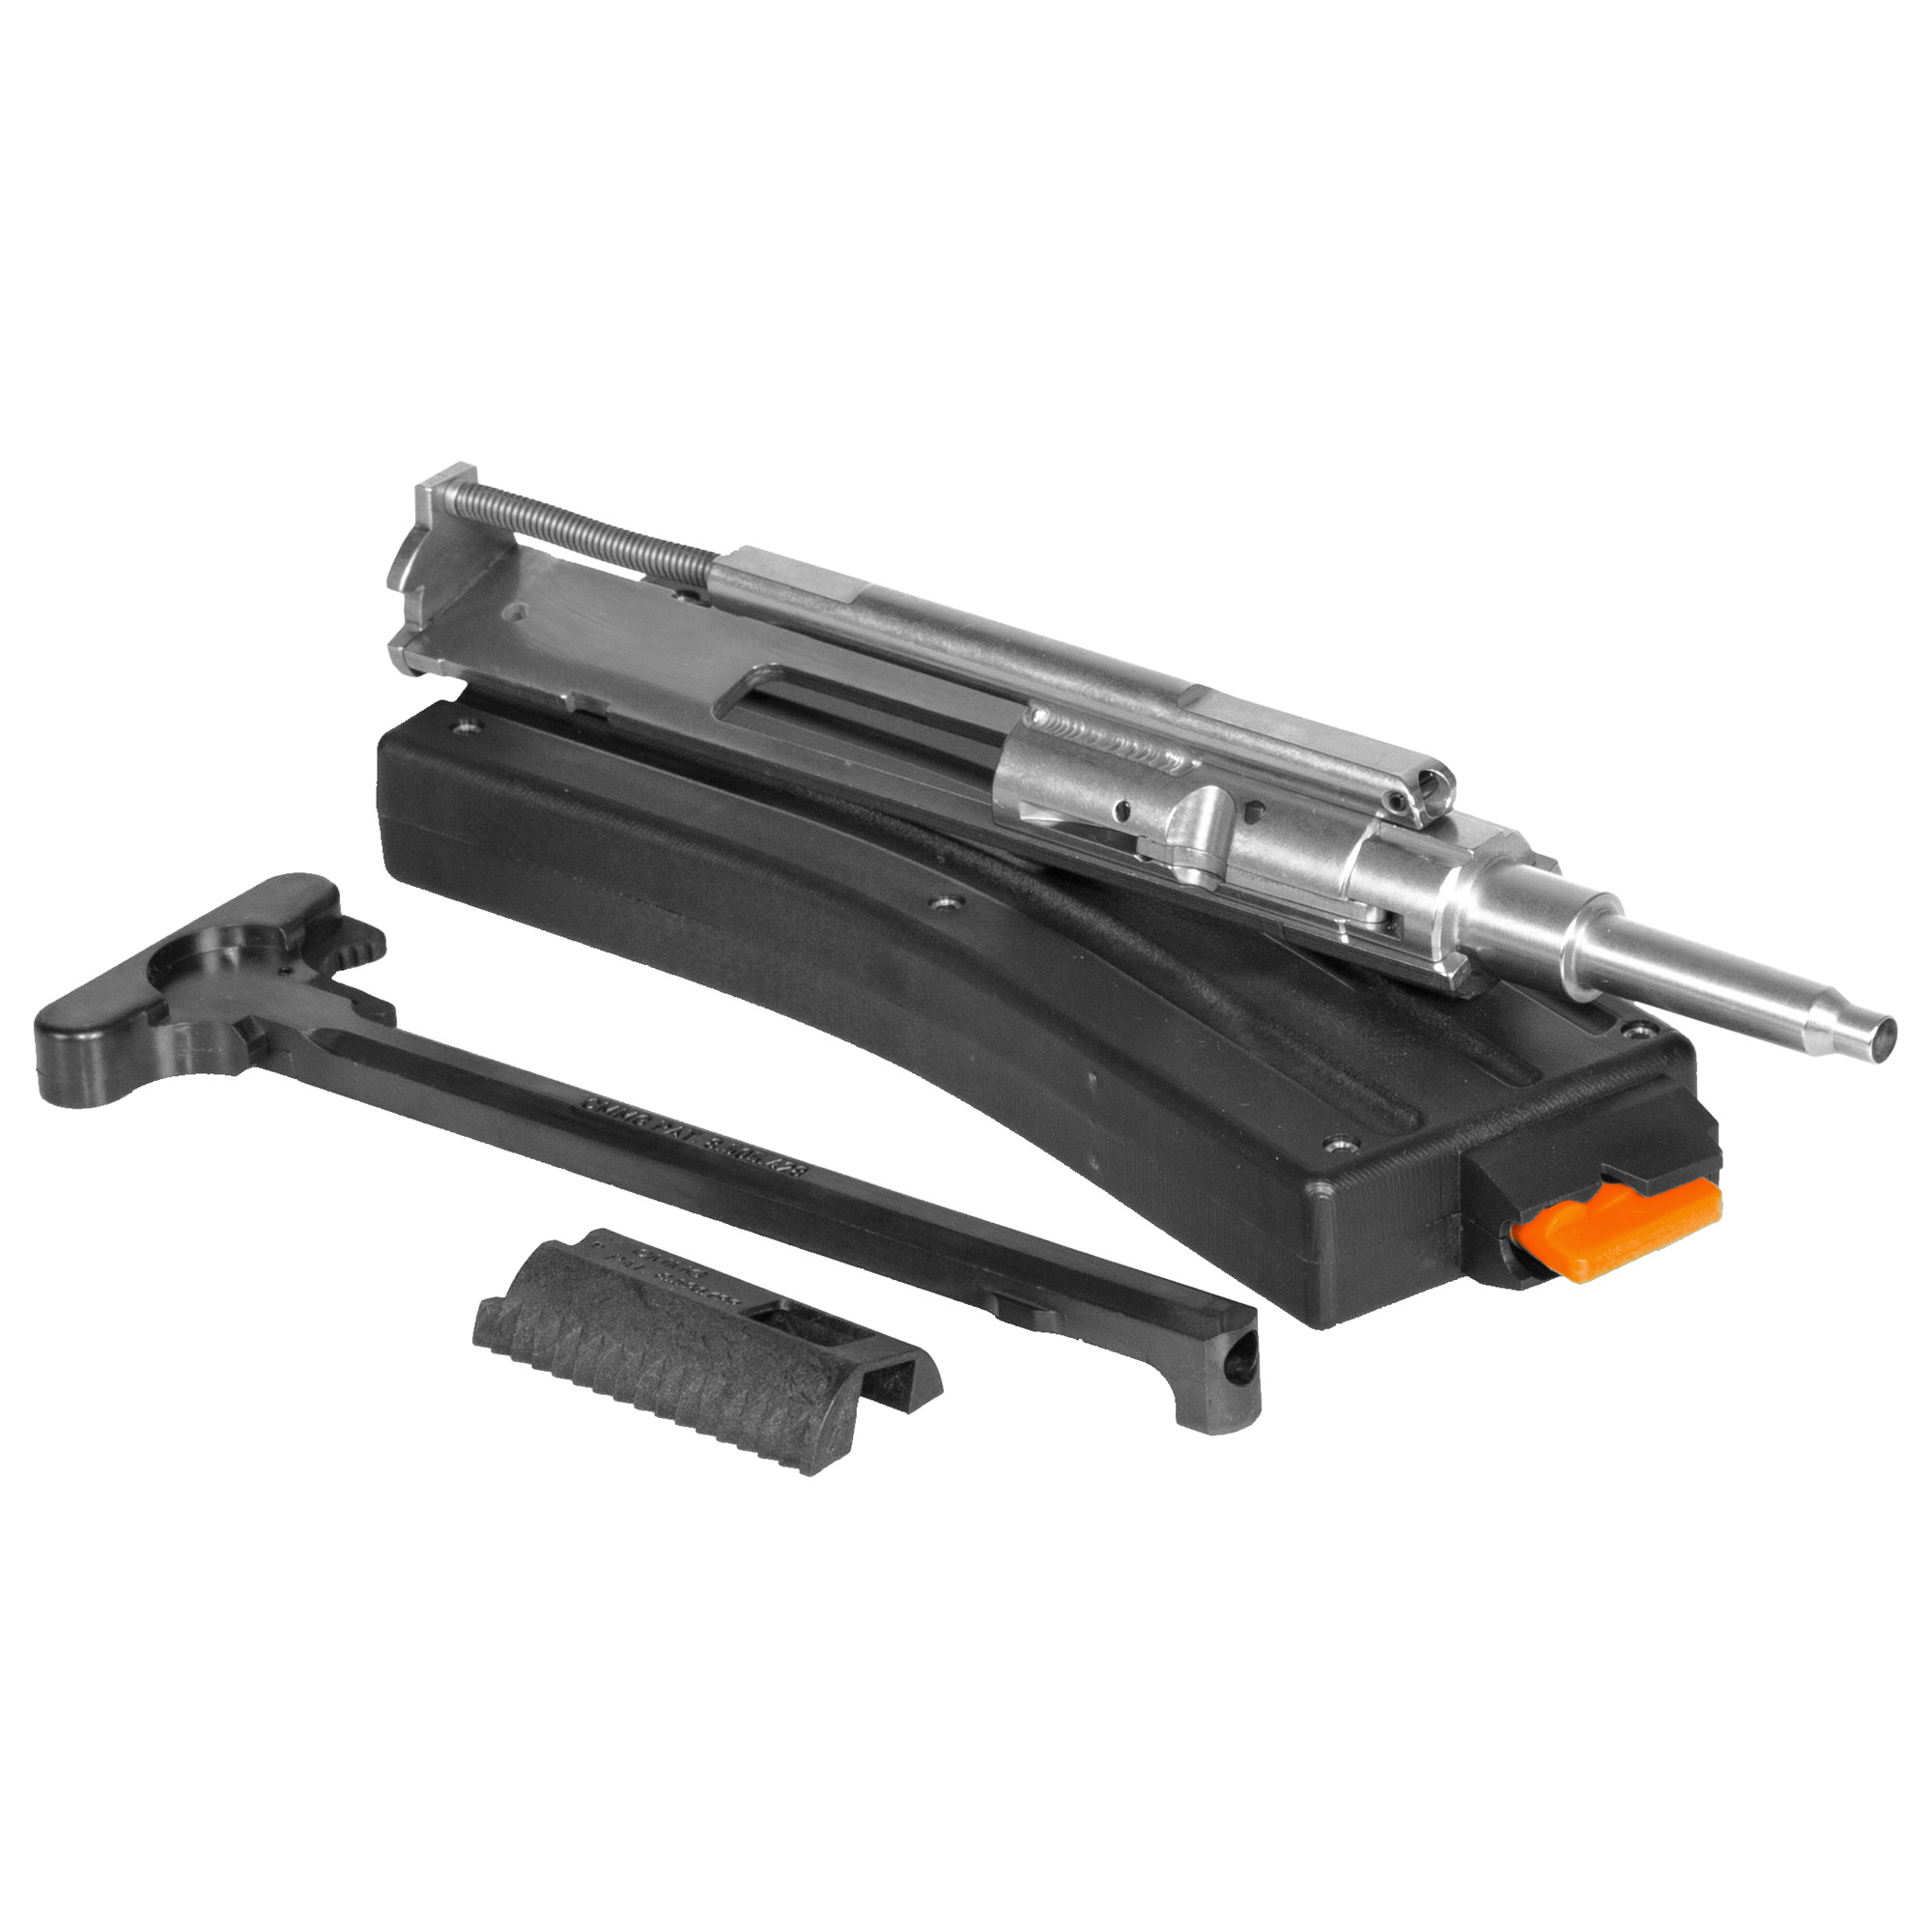 Just swap this drop in conversion with the bolt carrier group from your 5.56/.223 chambered rifle and you will be ready to shoot .22LR. Ships with 25rd 22LR magazine. For best performance use a round style hammer as notched hammers can cause function issues and 36 grain plated nose bullets have proven to be the best choice for function.